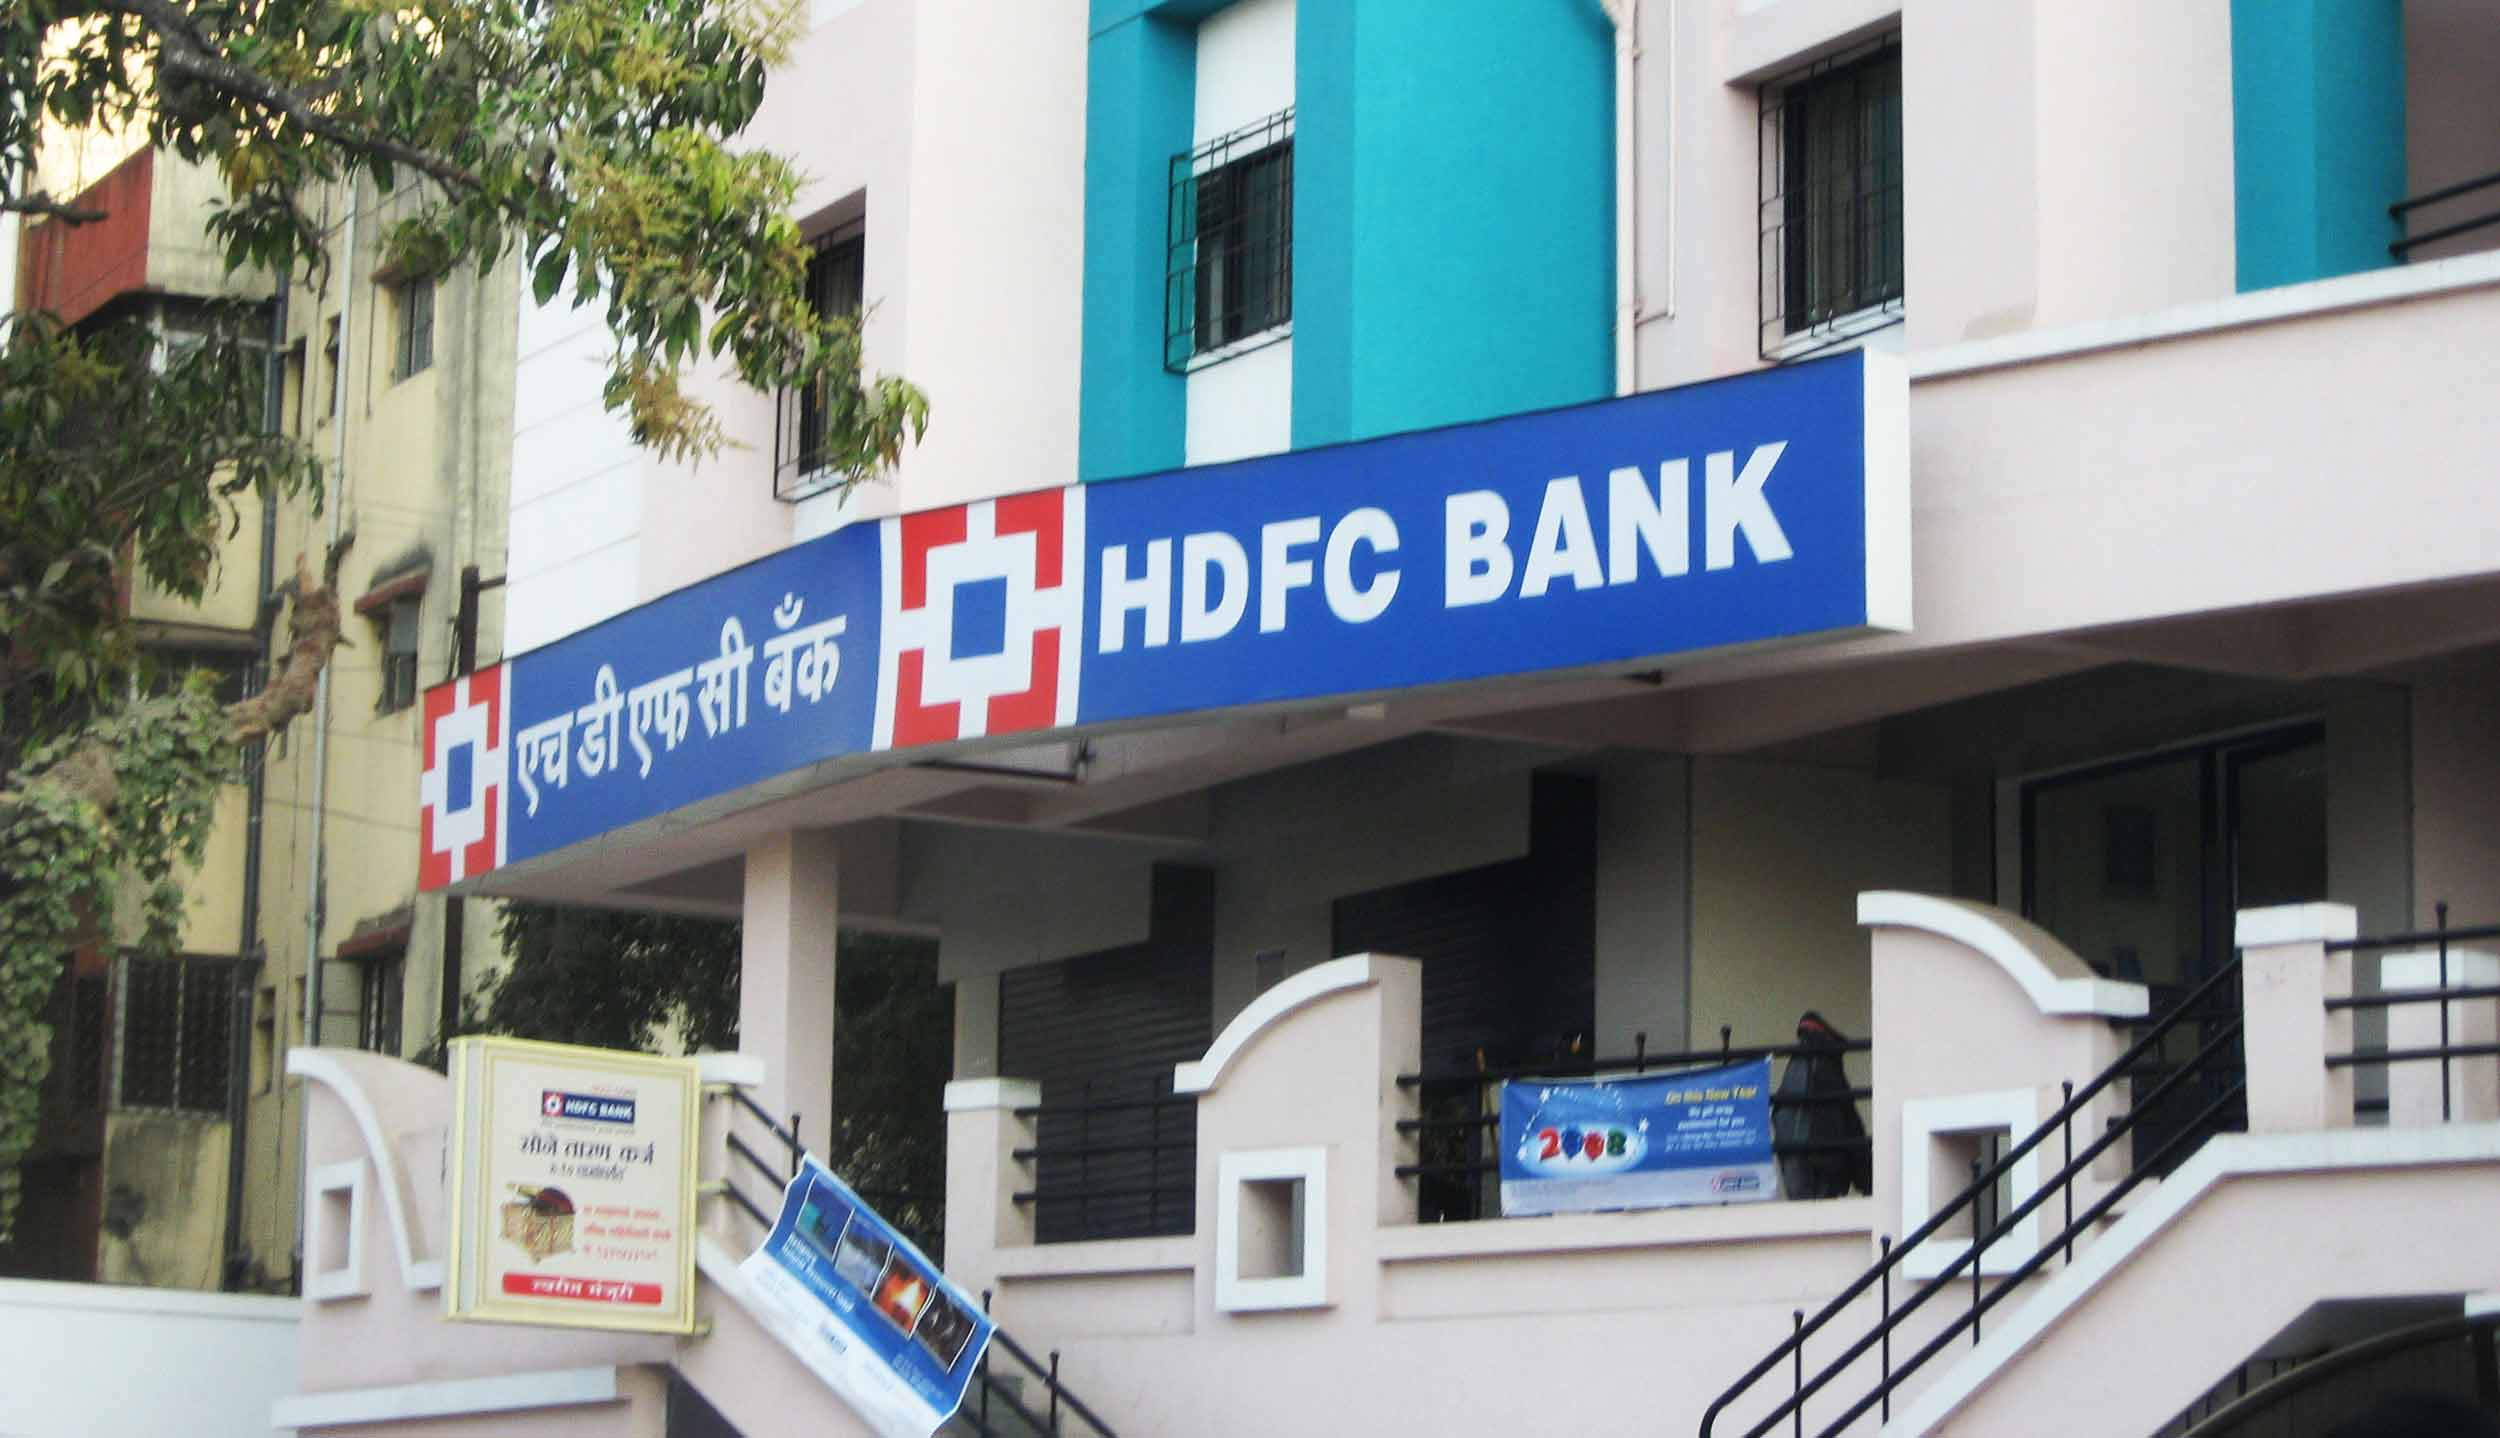 HDFC Bank expects retail segment to report higher incidence of asset quality stress due to second wave